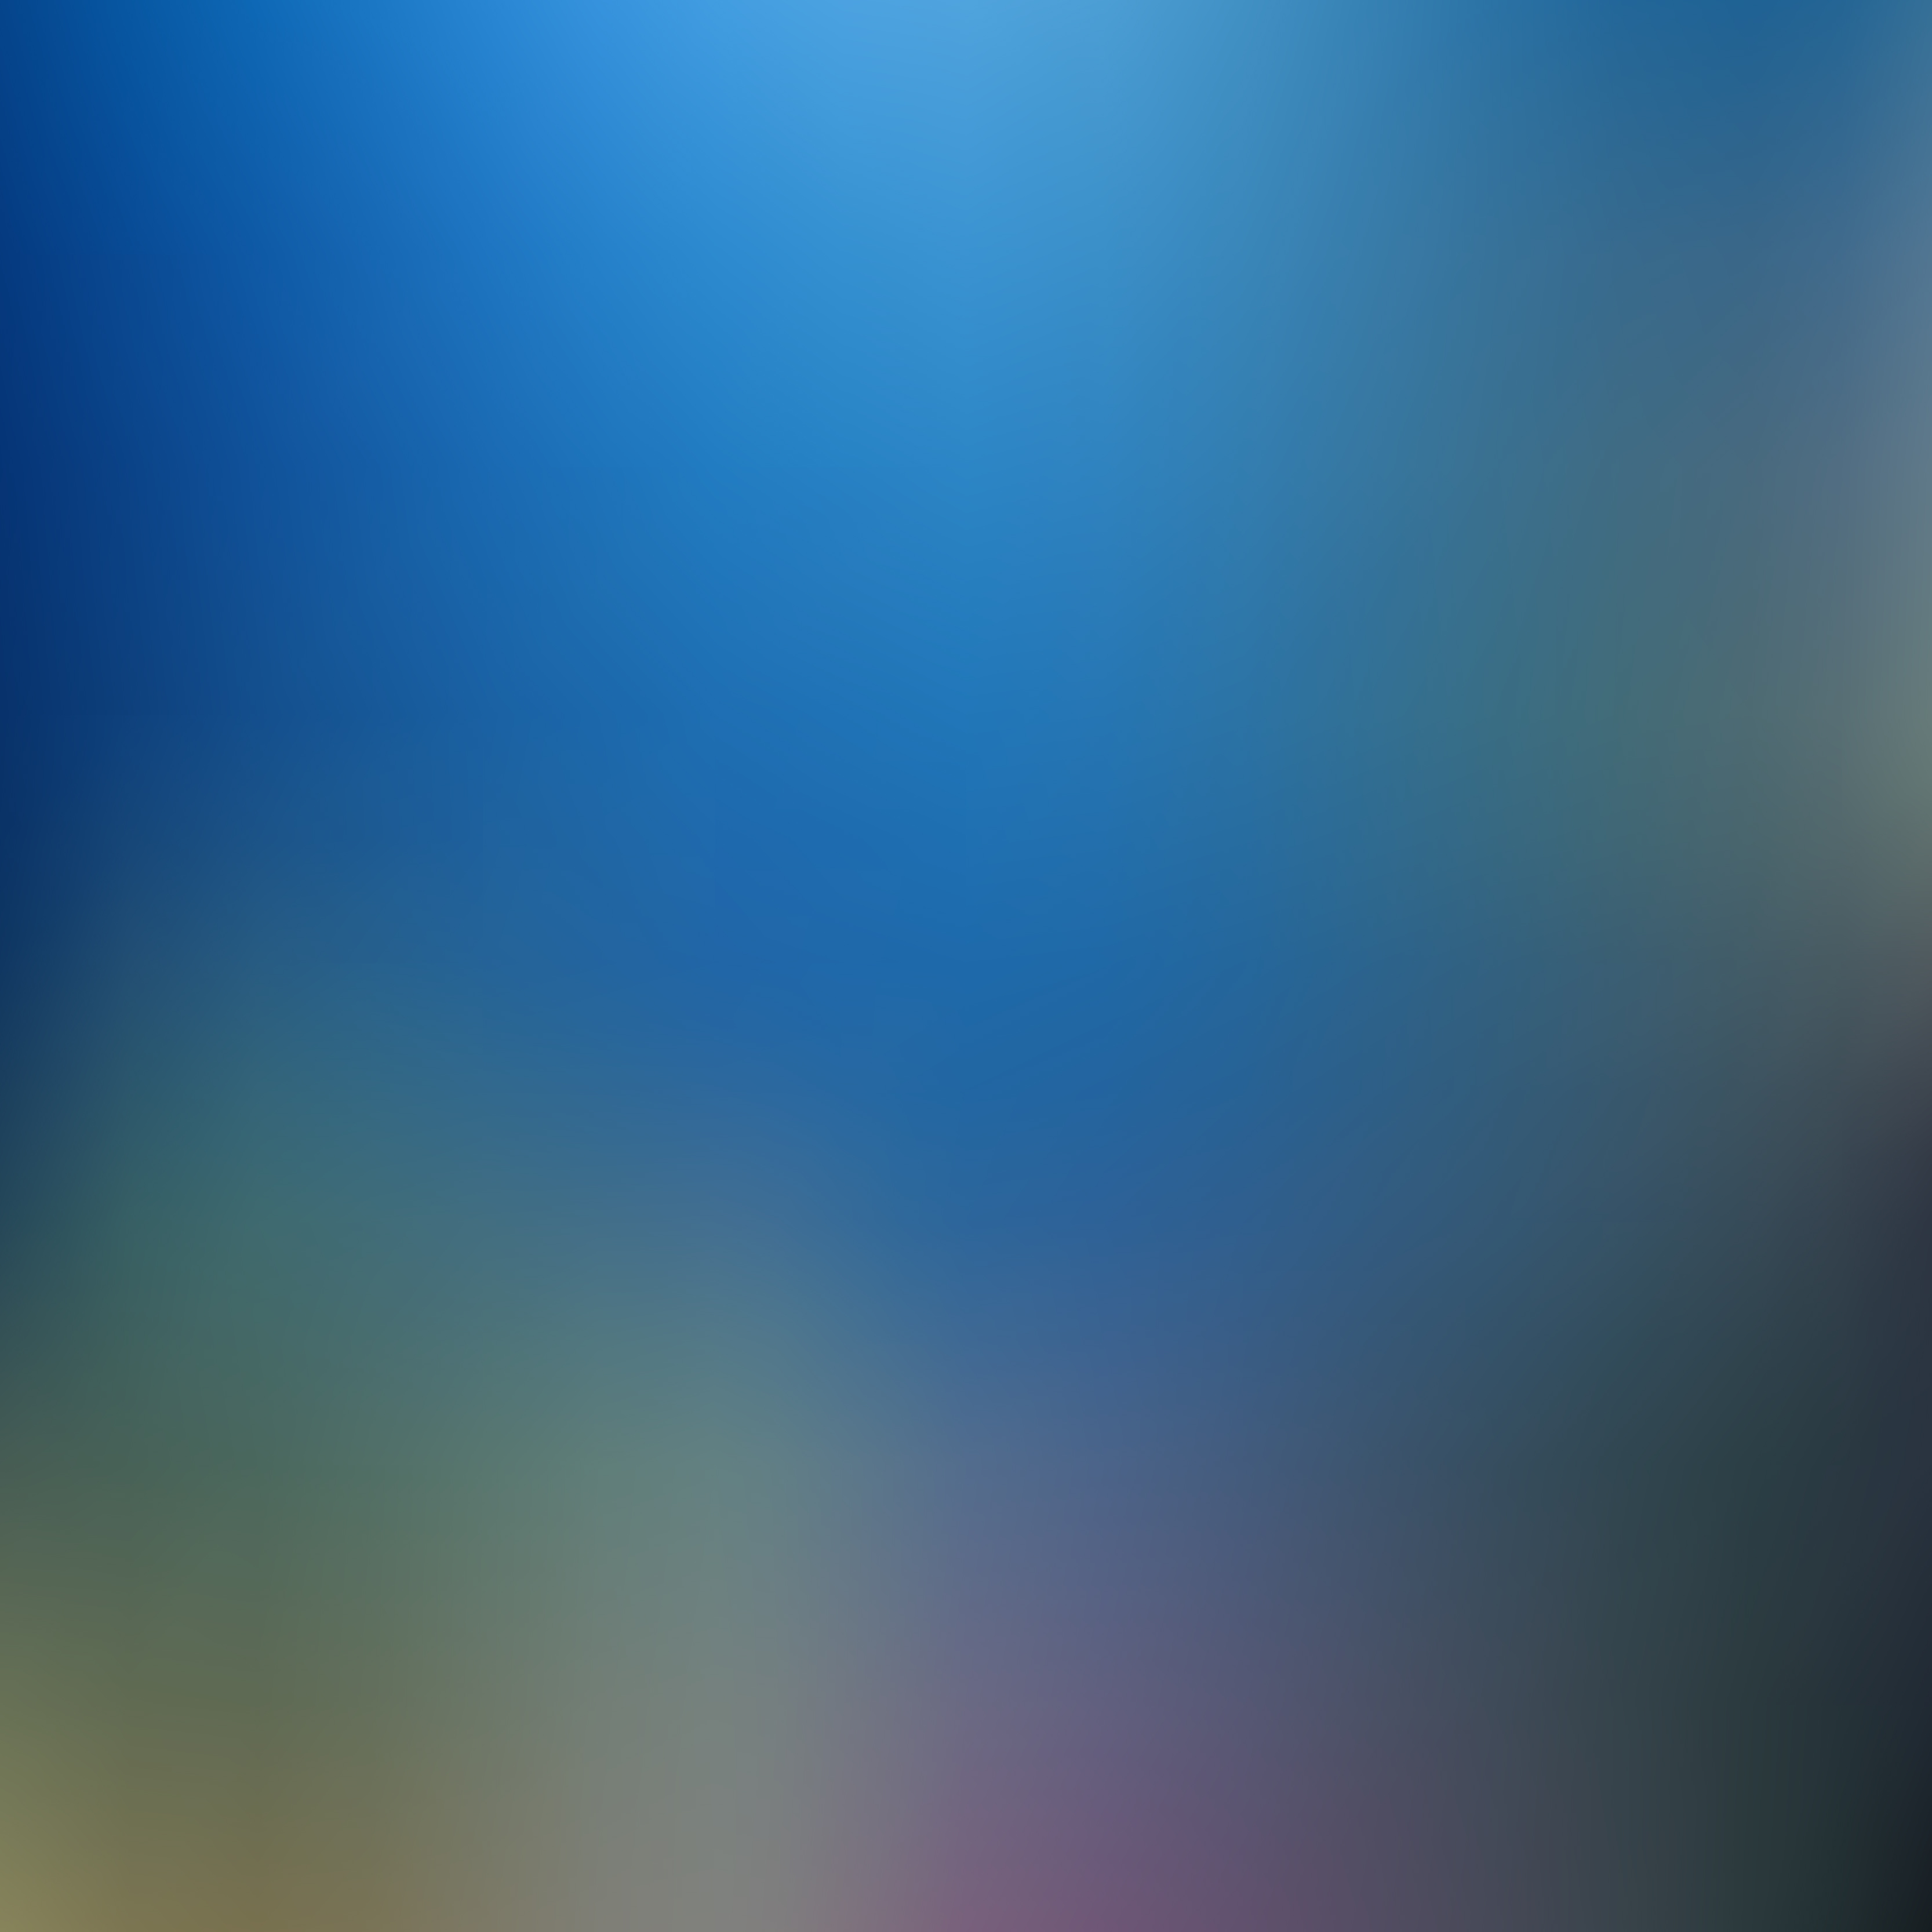 Abstract Background, Blue And Purple Color Mesh Gradient